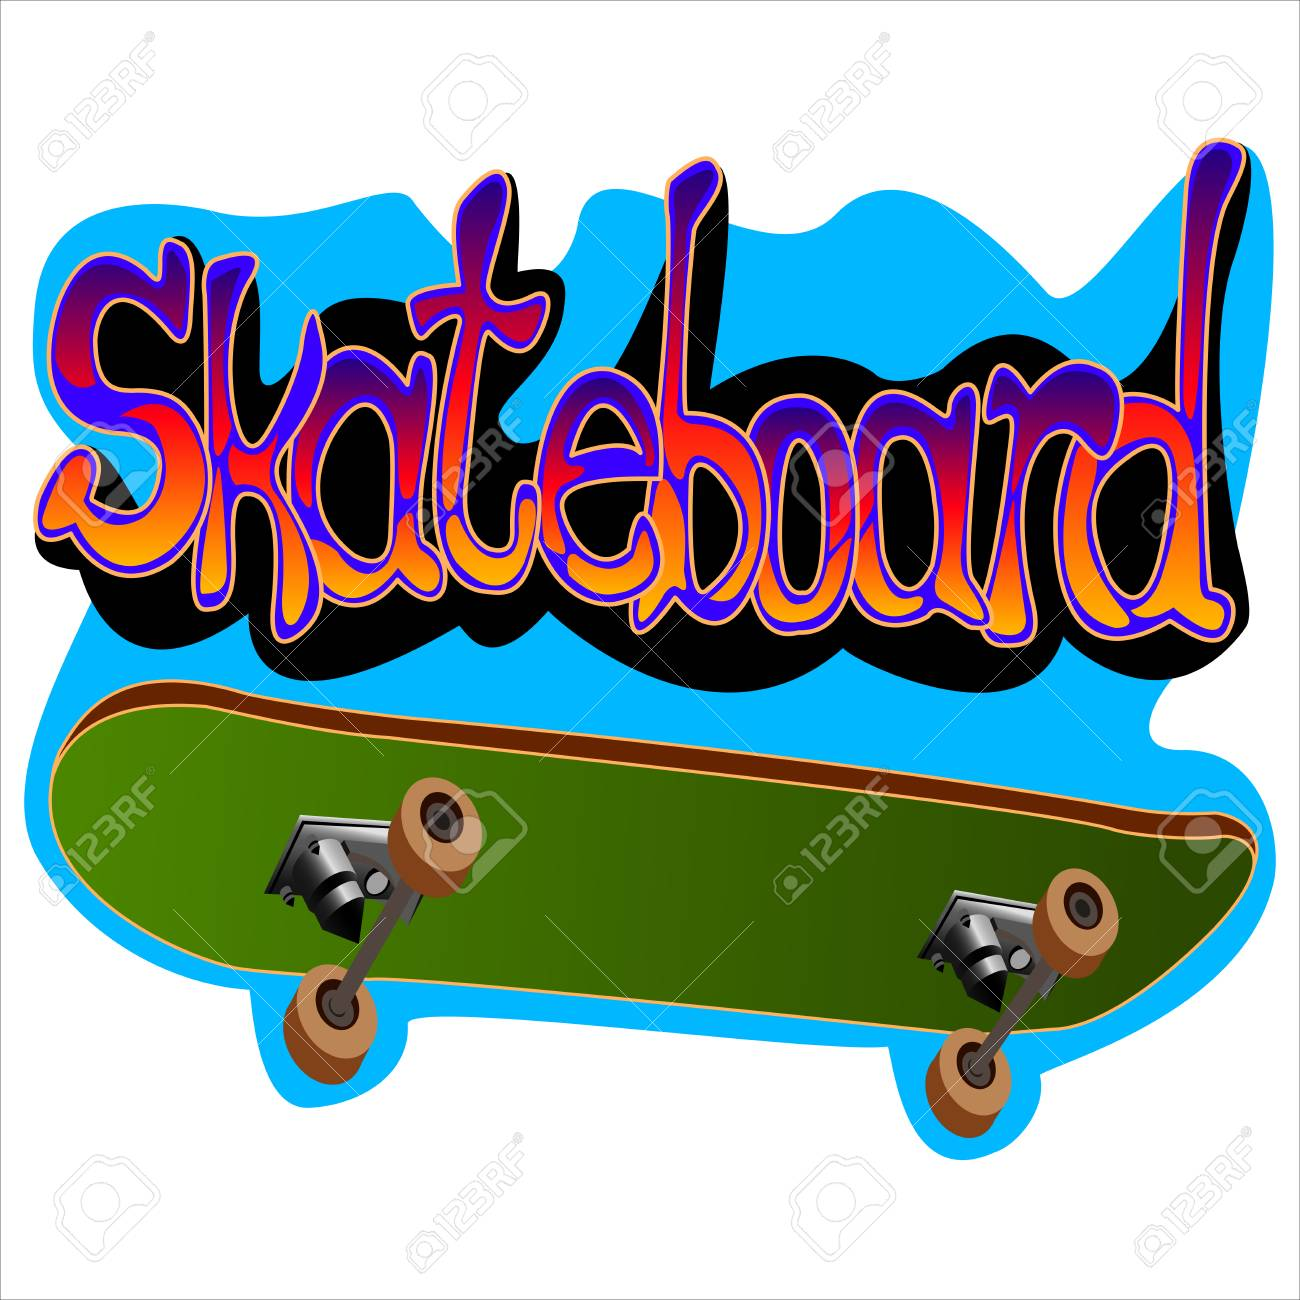 Graffiti from the skateboard and labels on white background vector graffiti from the skateboard and labels on white background vector illustration stock vector 74744304 thecheapjerseys Gallery